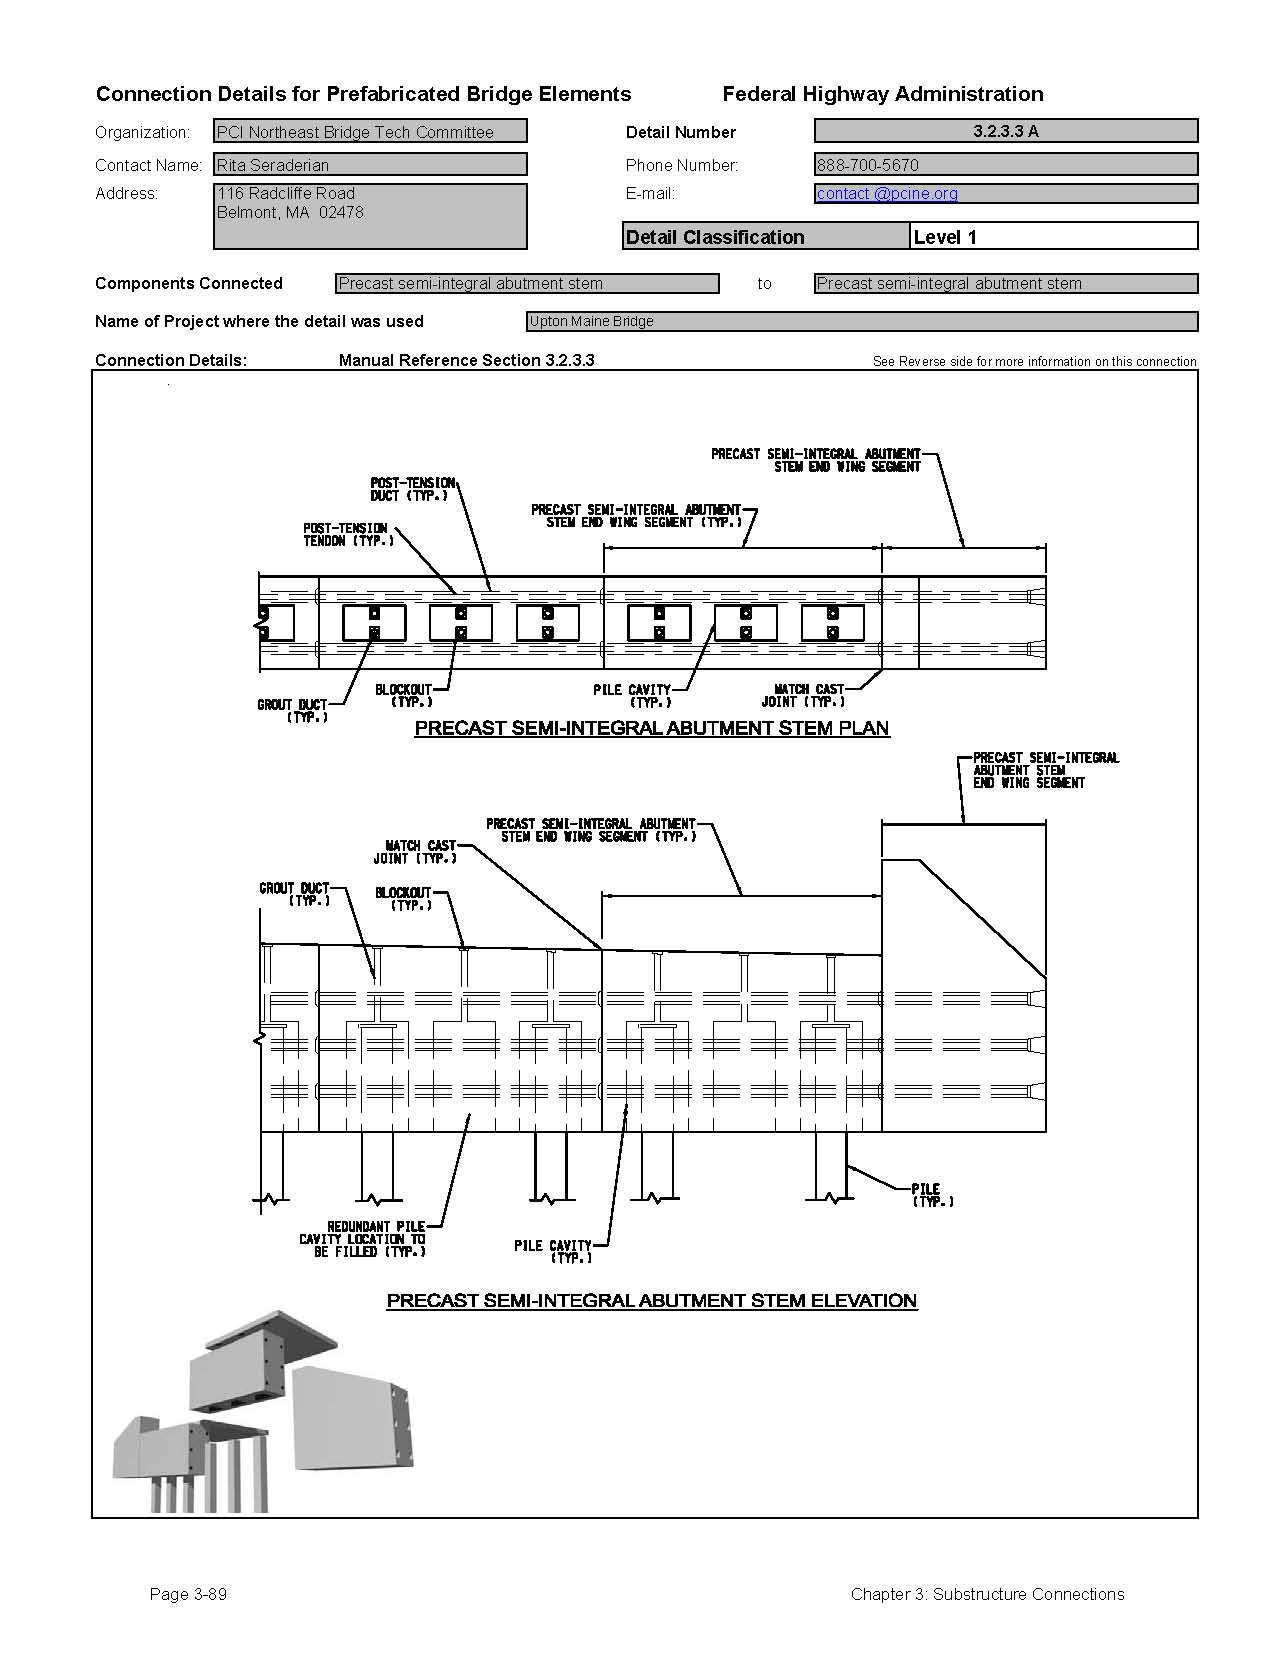 Chapter 3 substructure connections connection details for pbes this data sheet shows the connection between a precast semi integral abutment stem and precast ccuart Choice Image